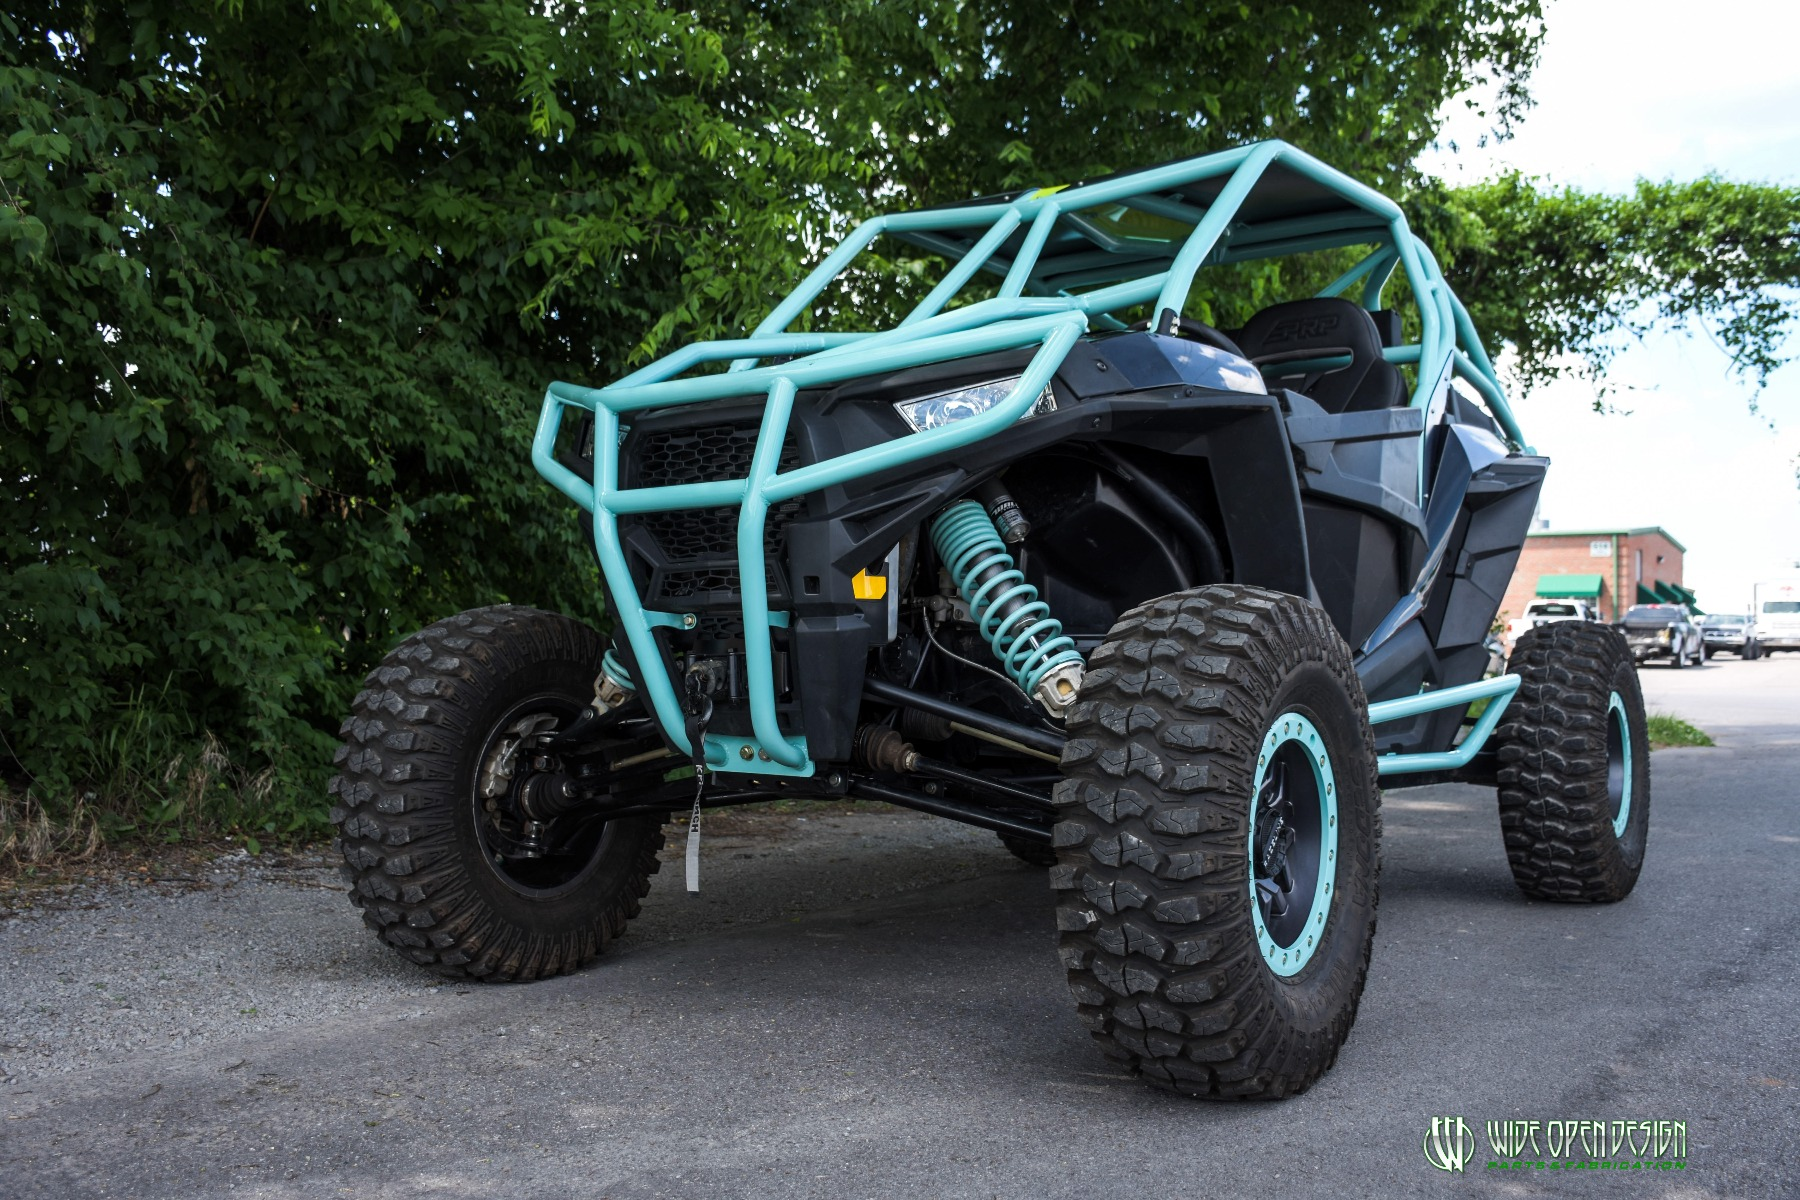 Wide Open Design UTV Cage RZR Cage Double Down featuring Double Pillars 17